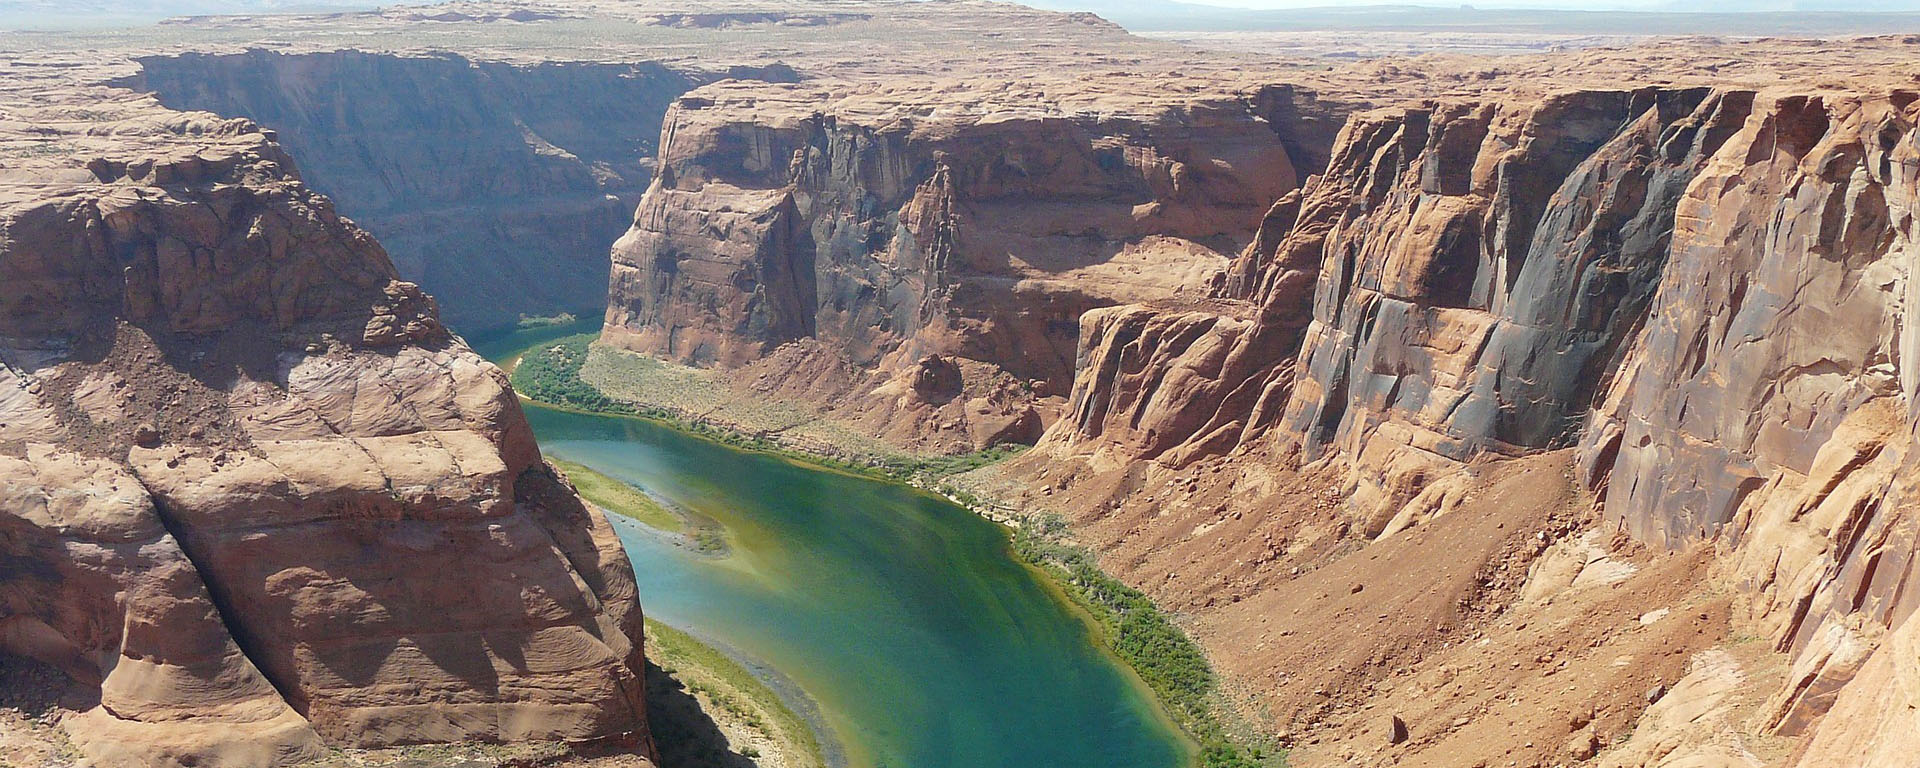 Colorado River horseshoe-bend Image by Hans Braxmeier from Pixabay .jpg